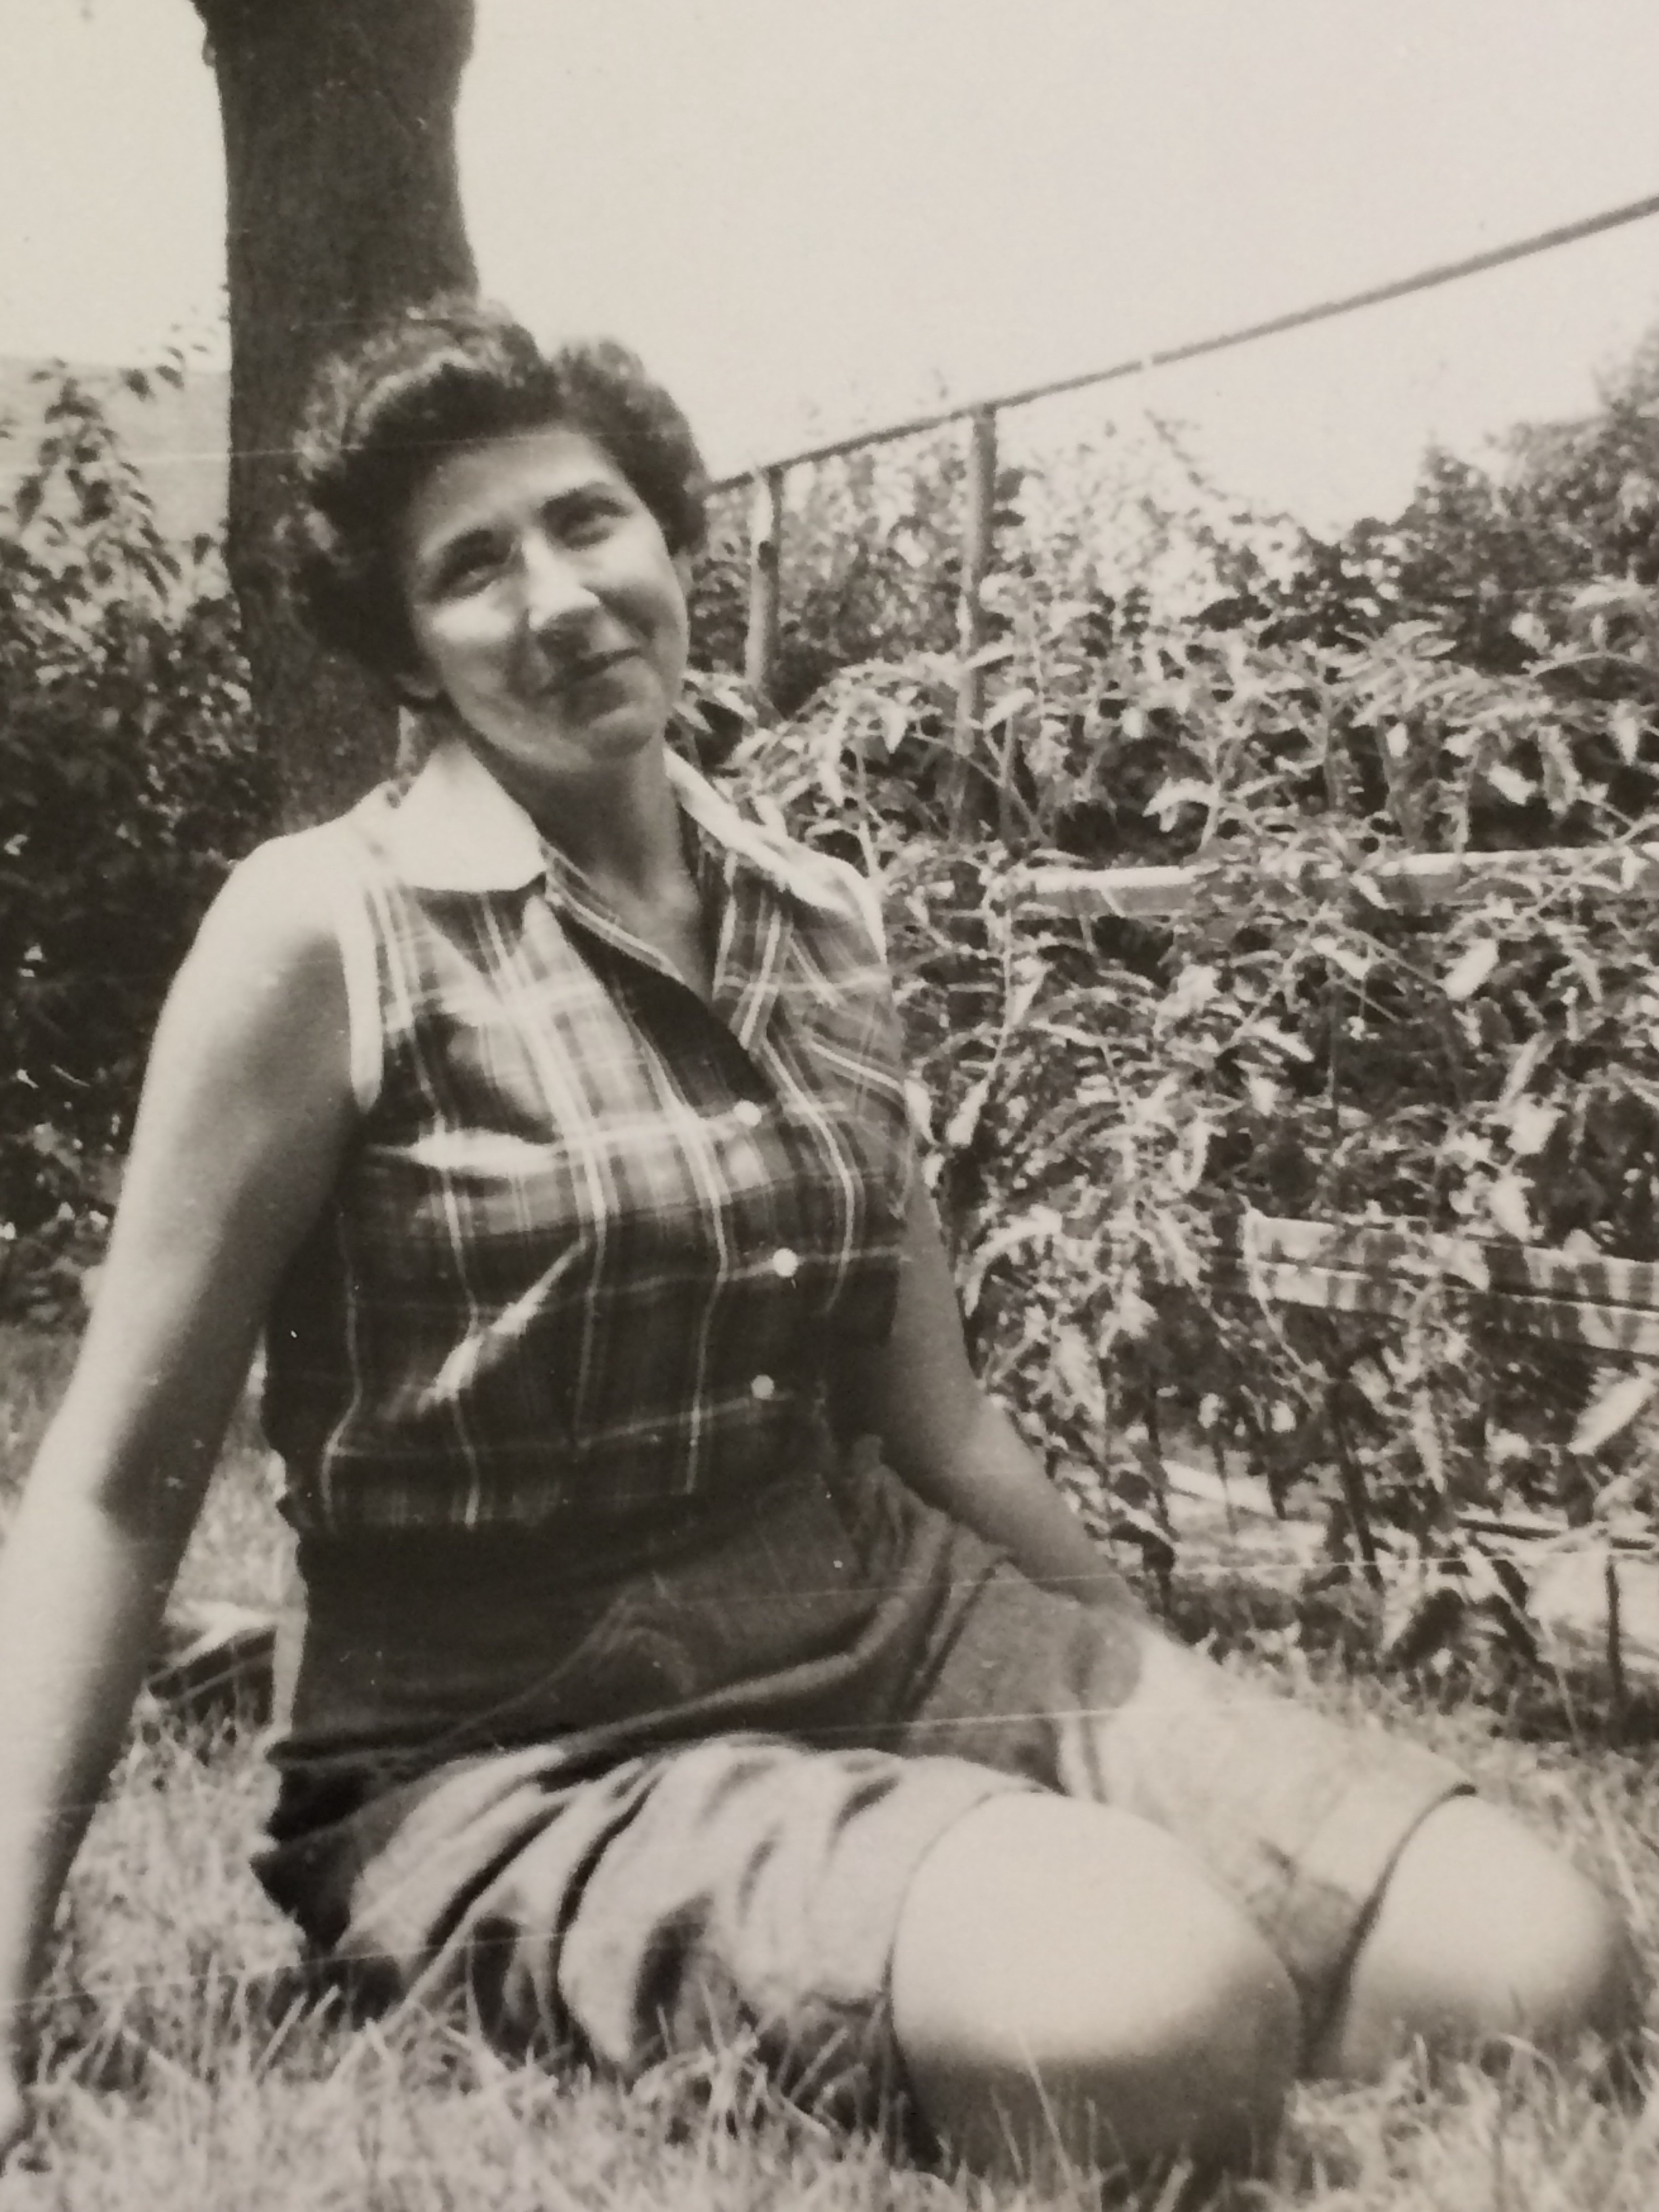 Nonna in the garden, shortly after marrying my Nonno in the 1950s.